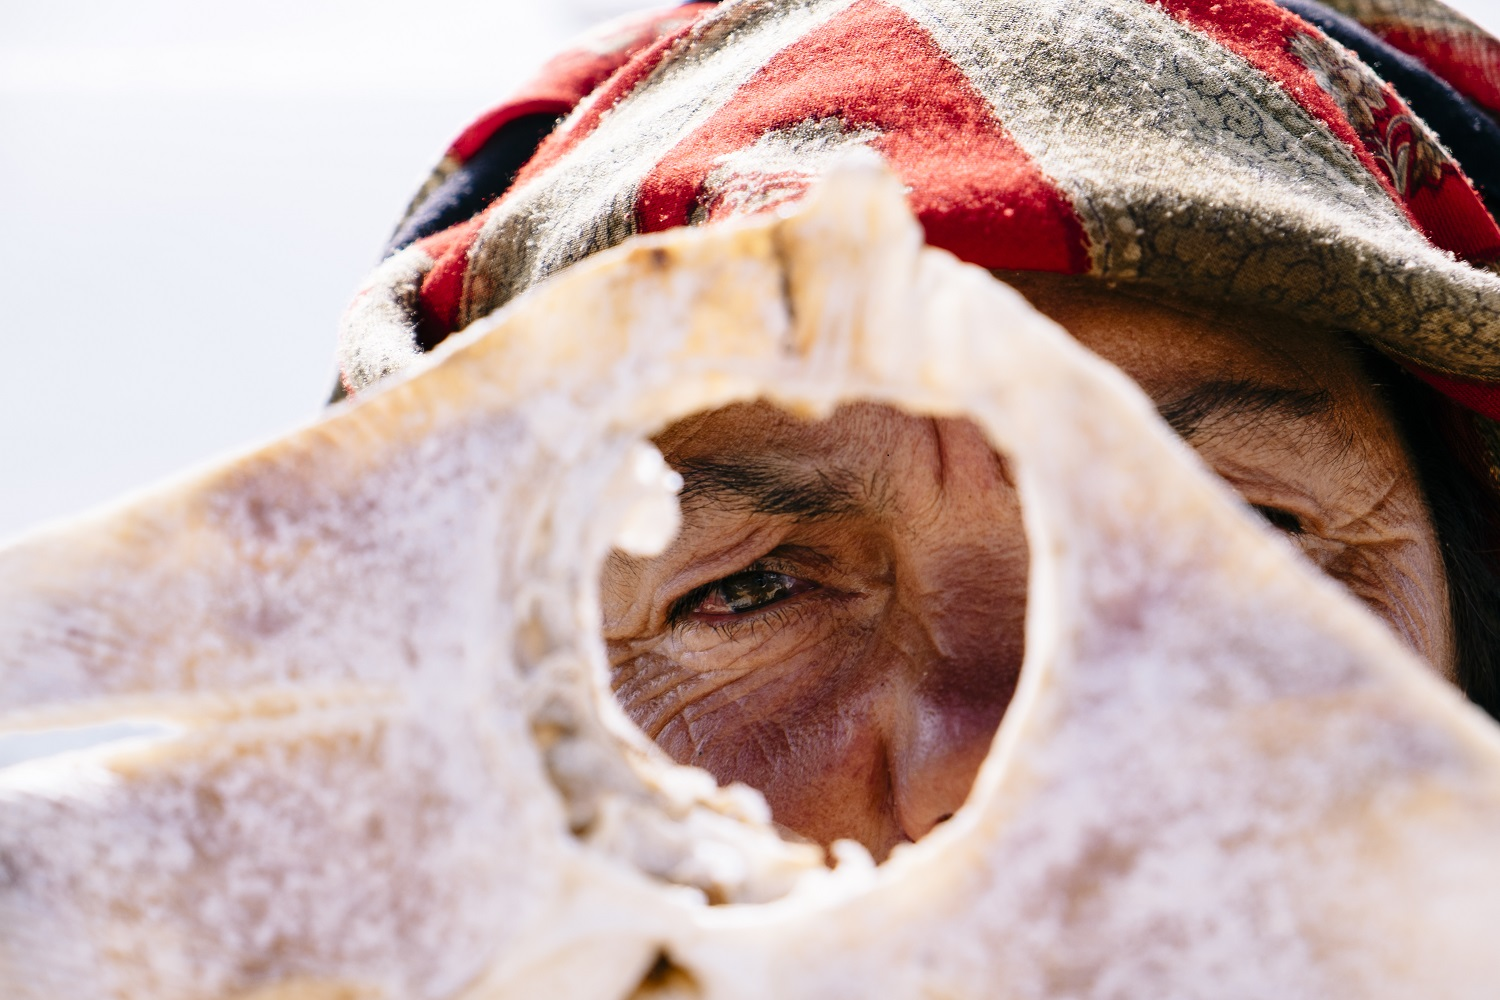 Dona Francelina is one of the most famous dried fish vendors in Nazaré, Portugal. For this portrait she peeked through a dried ray fish.